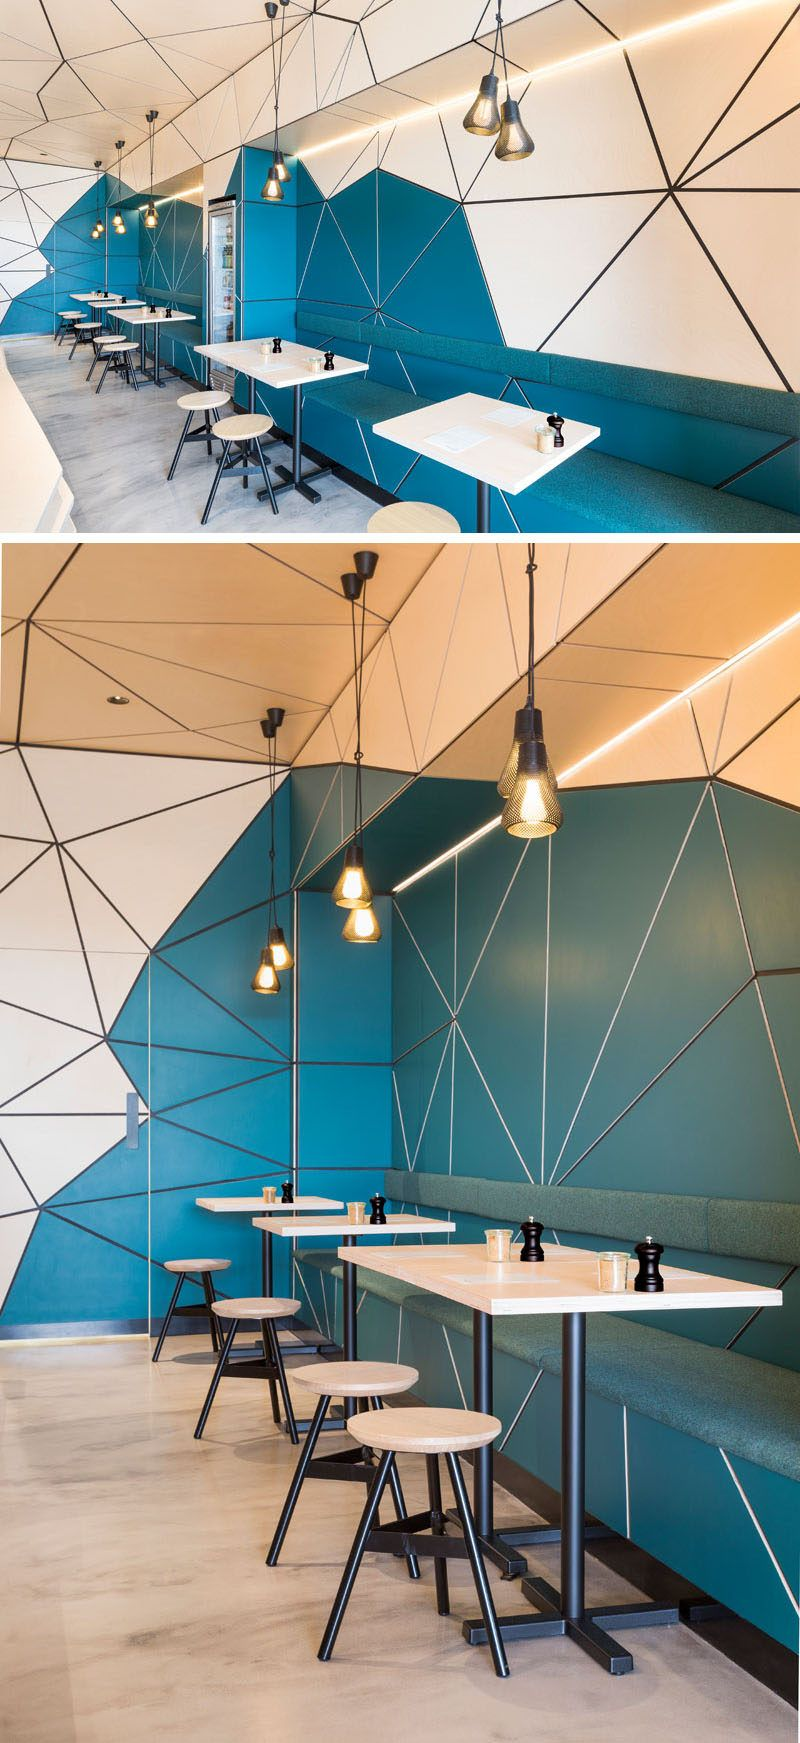 The interior of this cafe is covered in geometric panel shapes ...